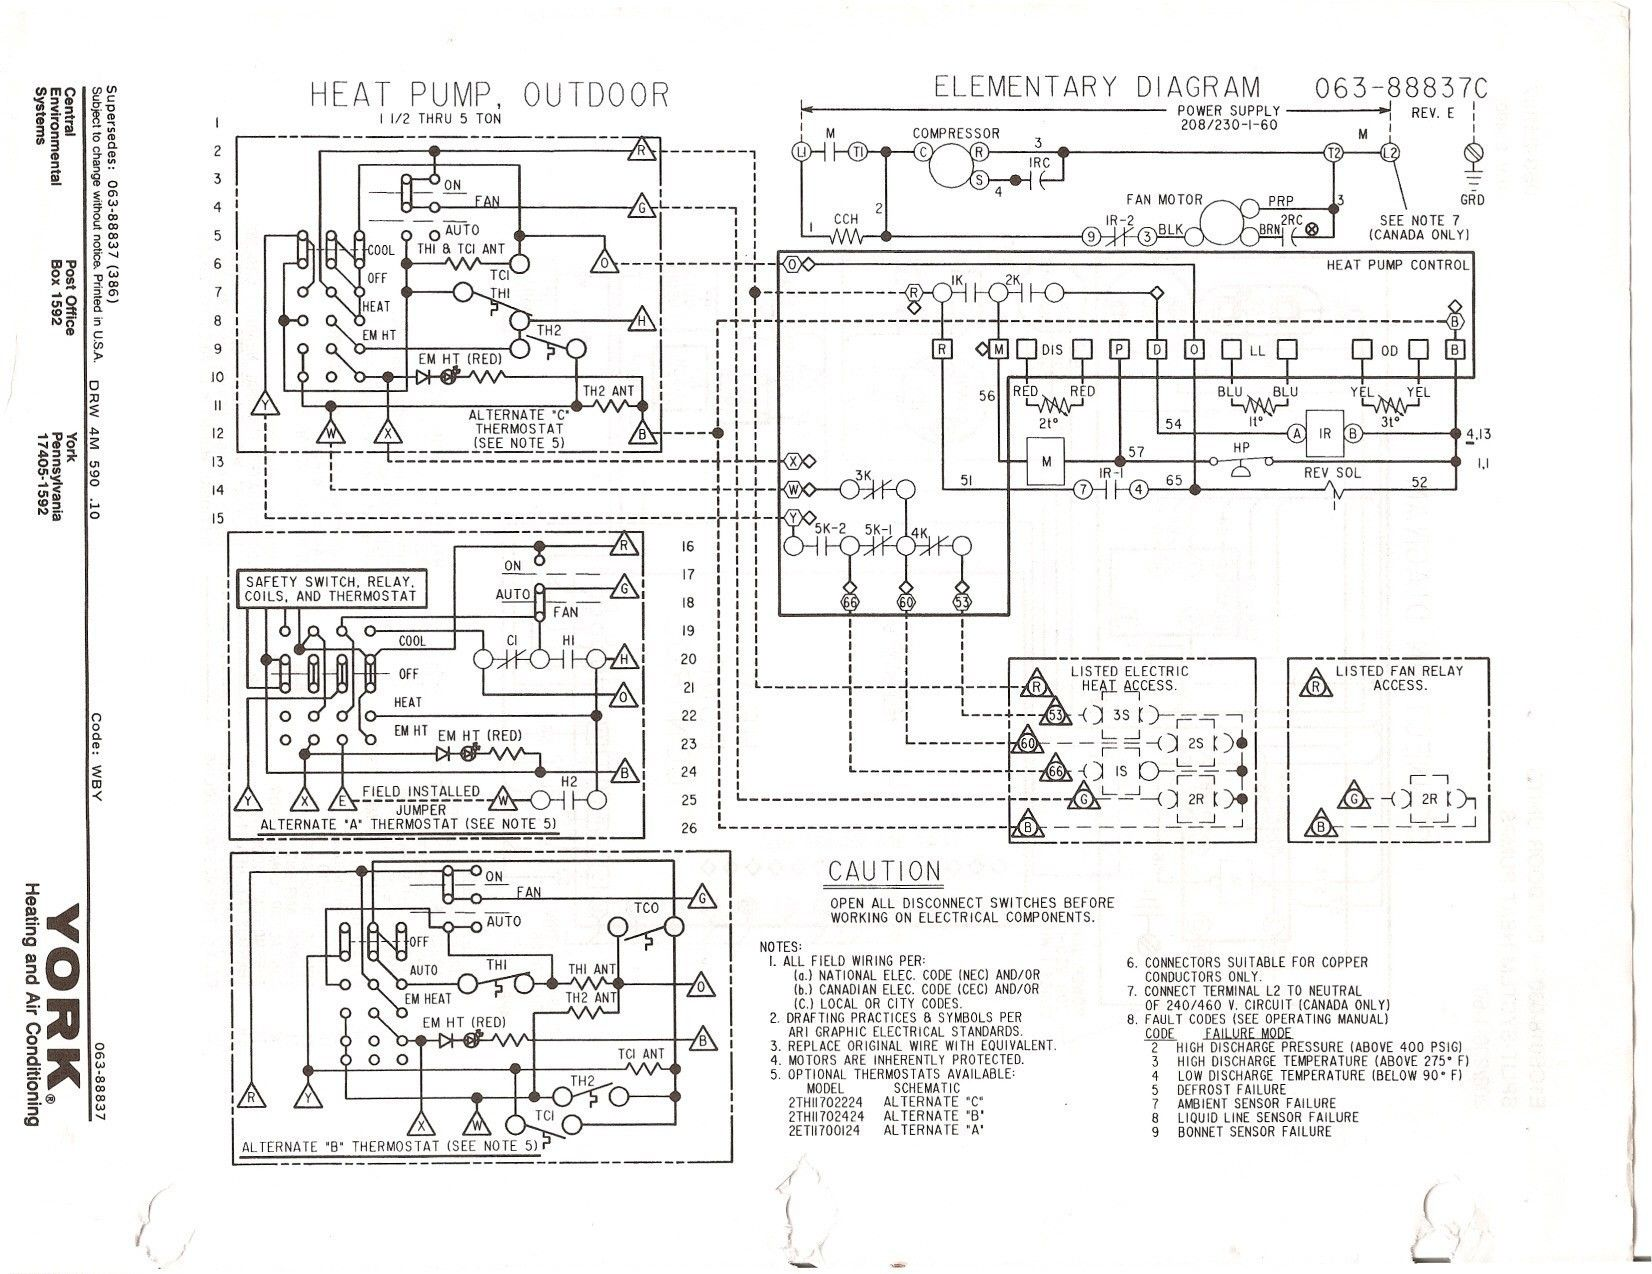 Unique Ac Circuit Diagram Diagram Wiringdiagram Diagramming Diagramm Visuals Visualisation Graphical Pallet Shed Thermostat Wiring Attic Organization